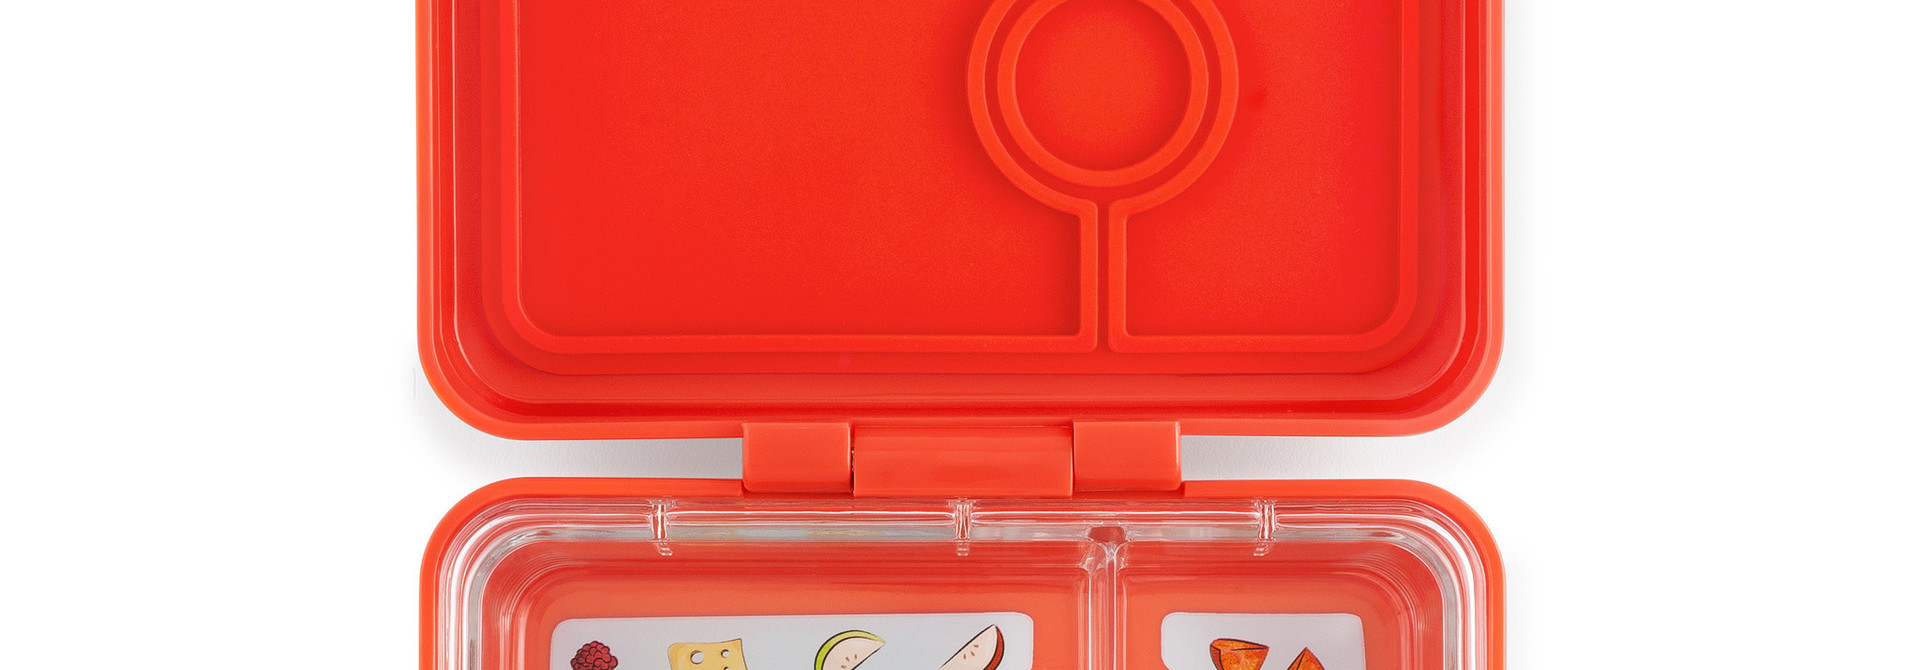 Yumbox MiniSnack 3-sections Saffron orange / Toucan tray